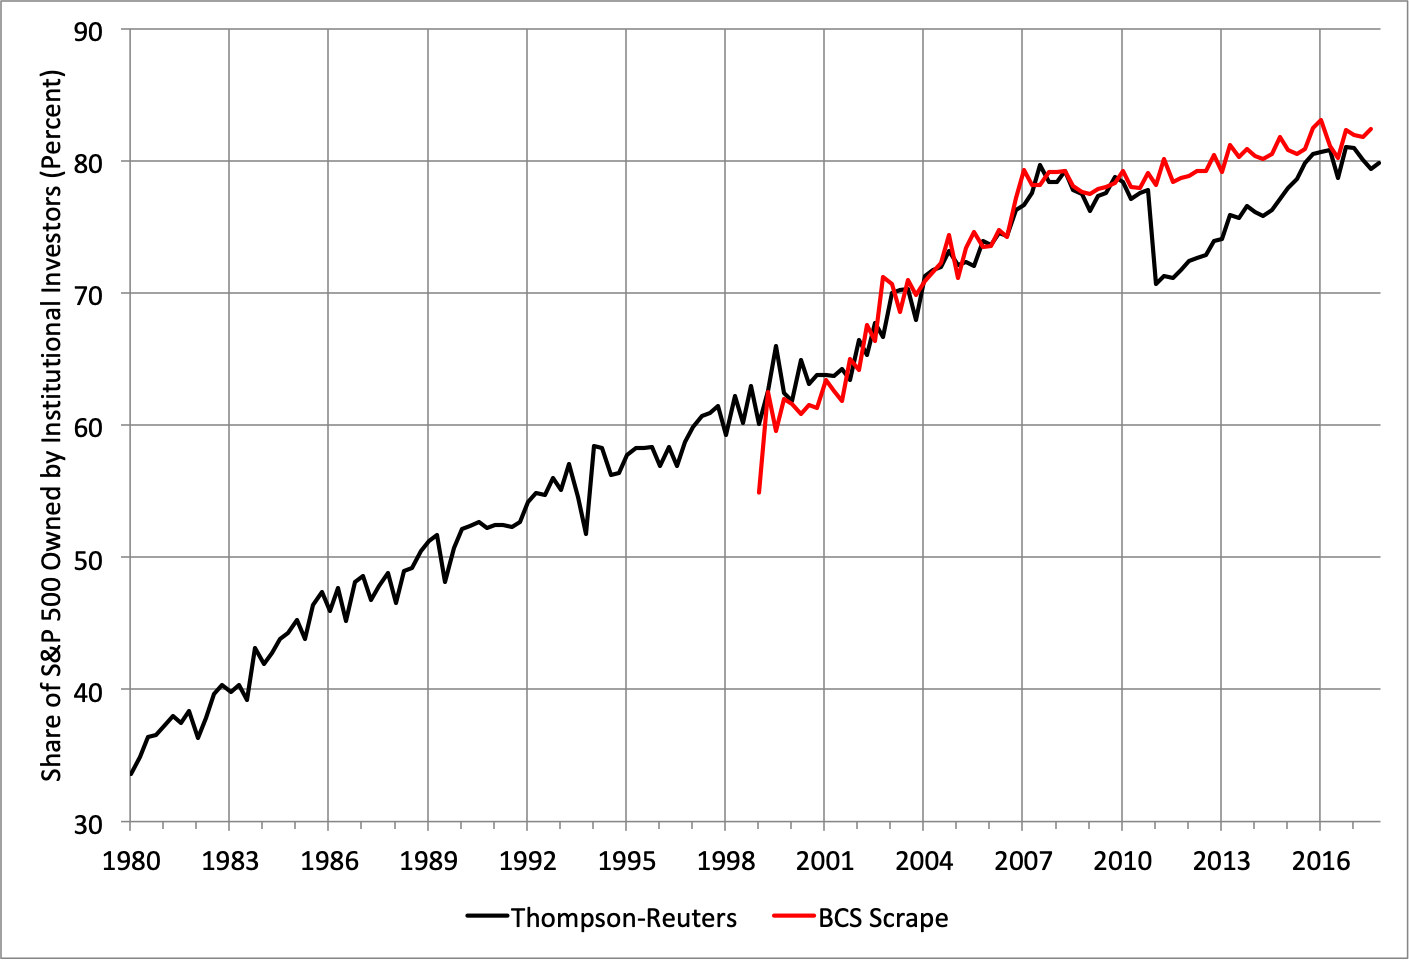 Note: According to BCS, their scraped measure seeks to address previously identified issues with the Thompson-Reuters data, including the plunge in 2011. Source: Figure 4, Backus Conlon Sinkinson,  Common Ownership in America: 1980-2017 .